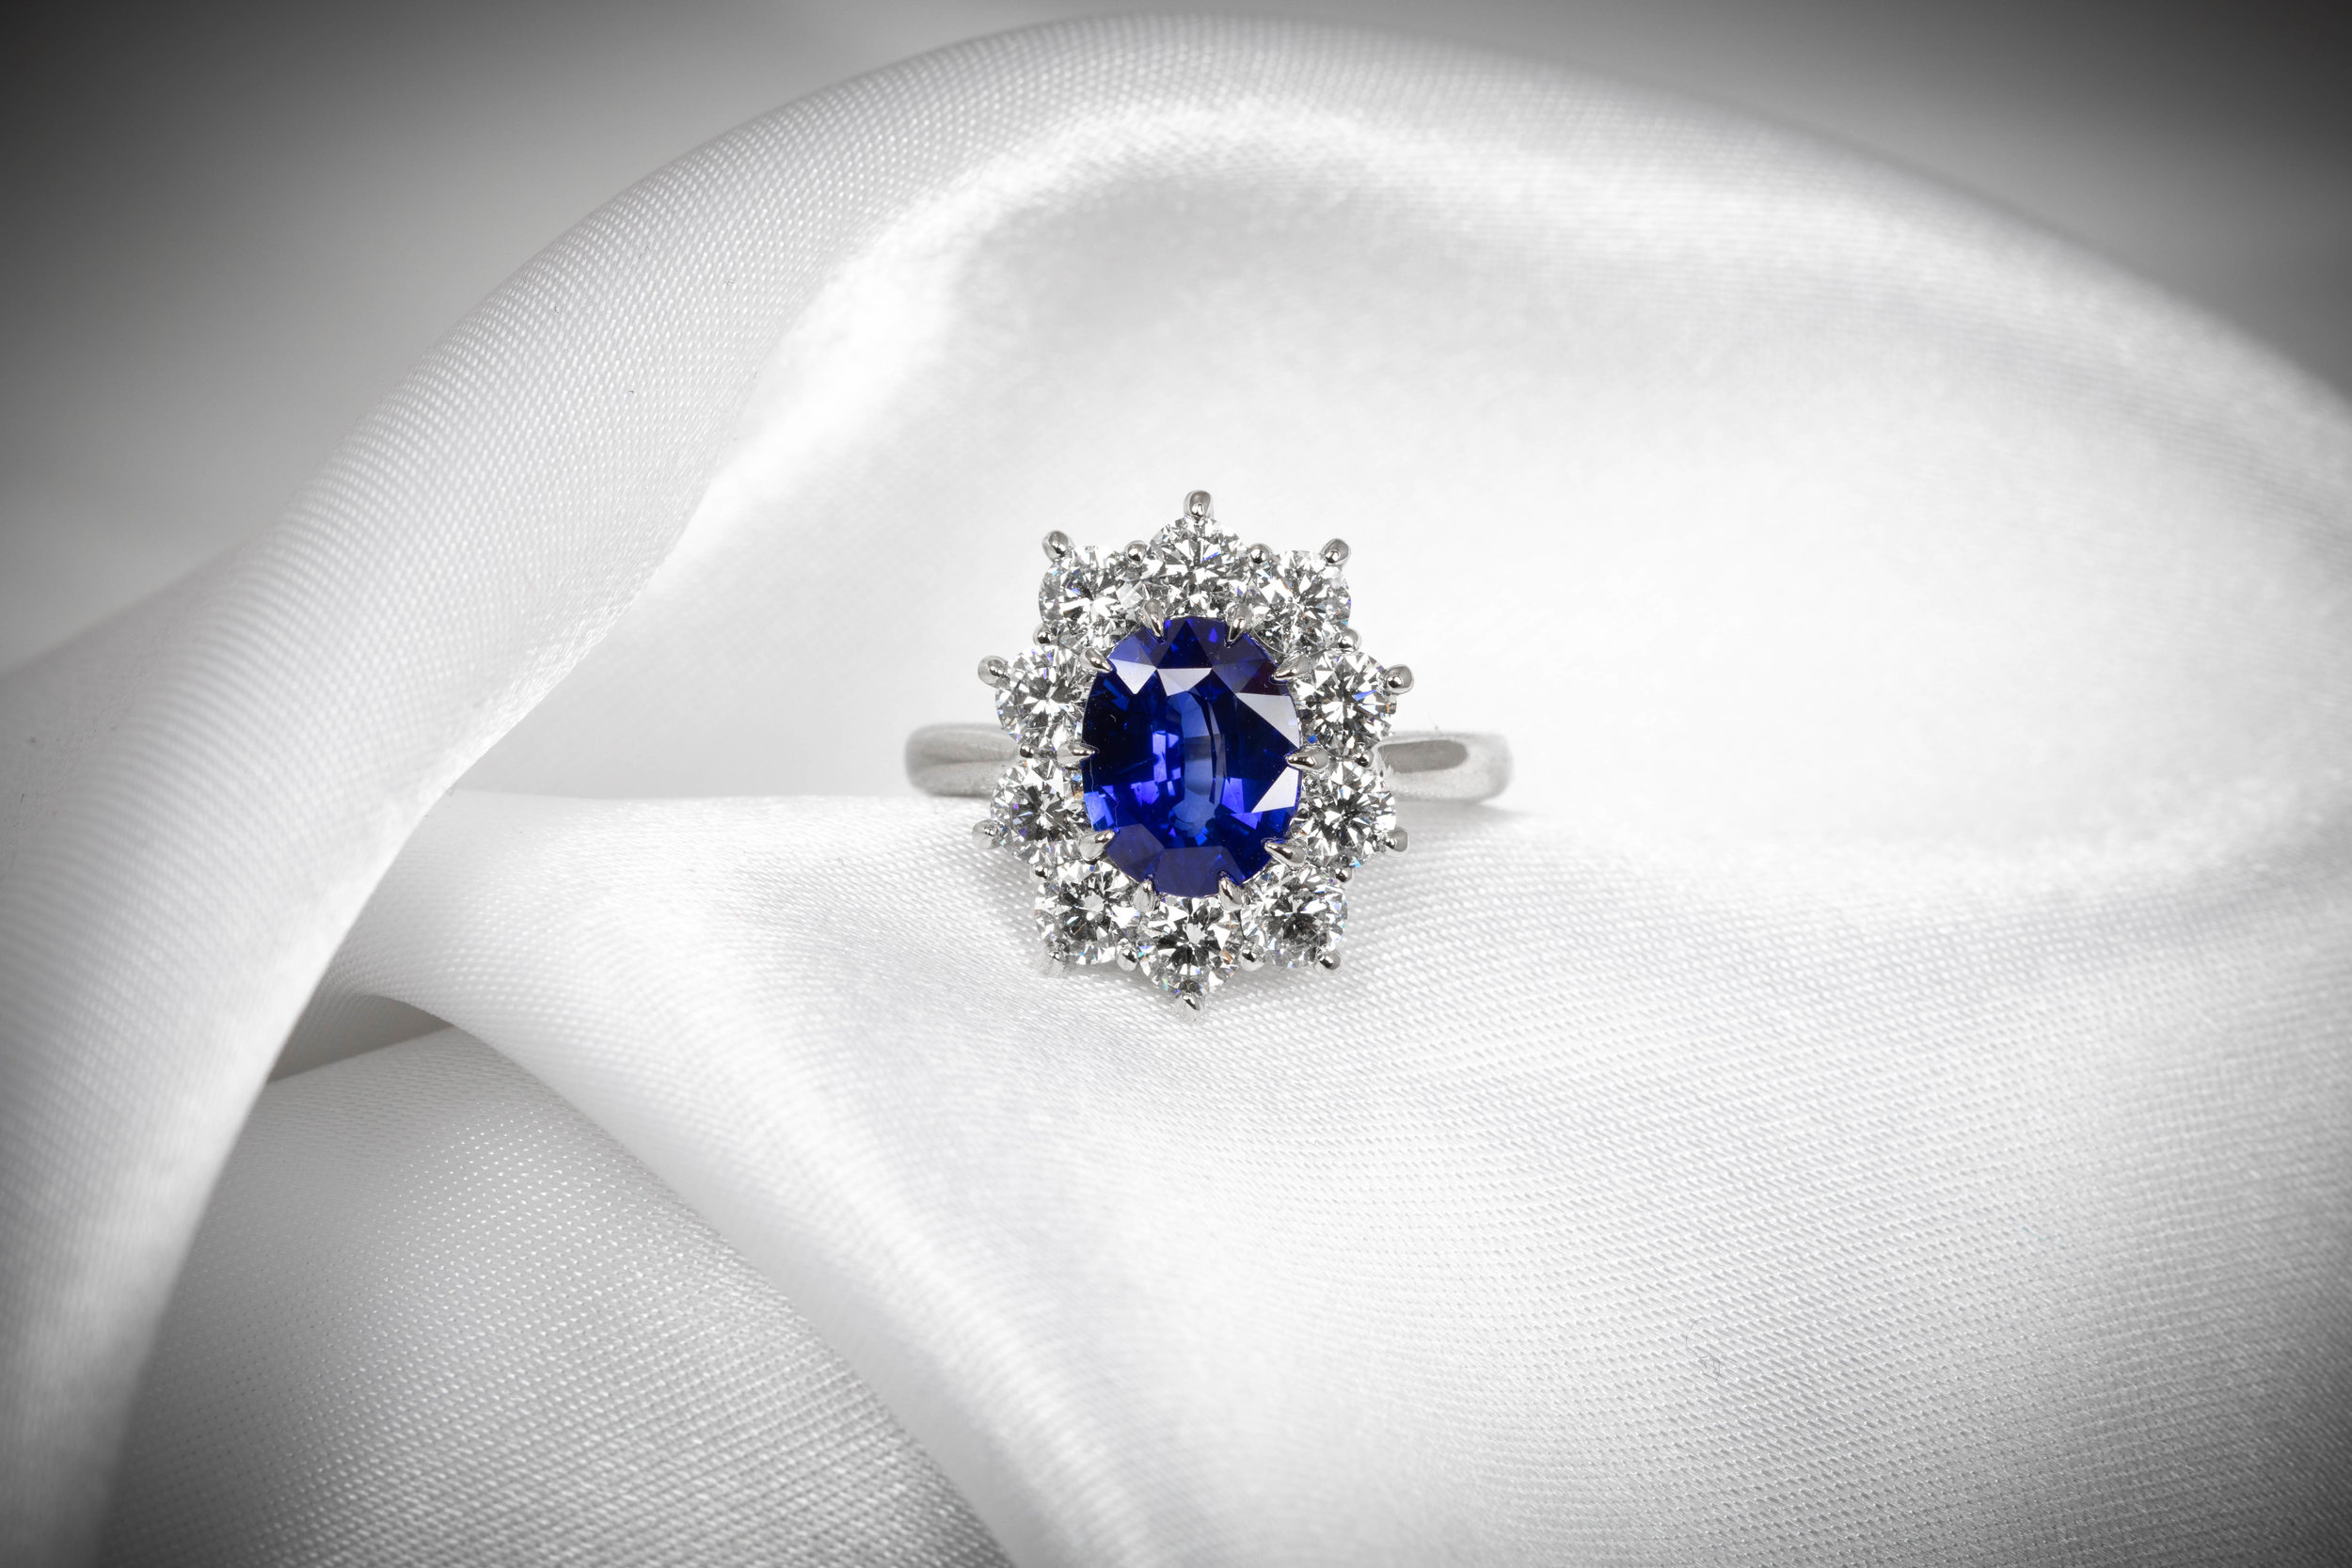 Platinum mounted 2.53ct Sri Lankkan sapphire in low profile basket claw setting. Made in Chichester, England.